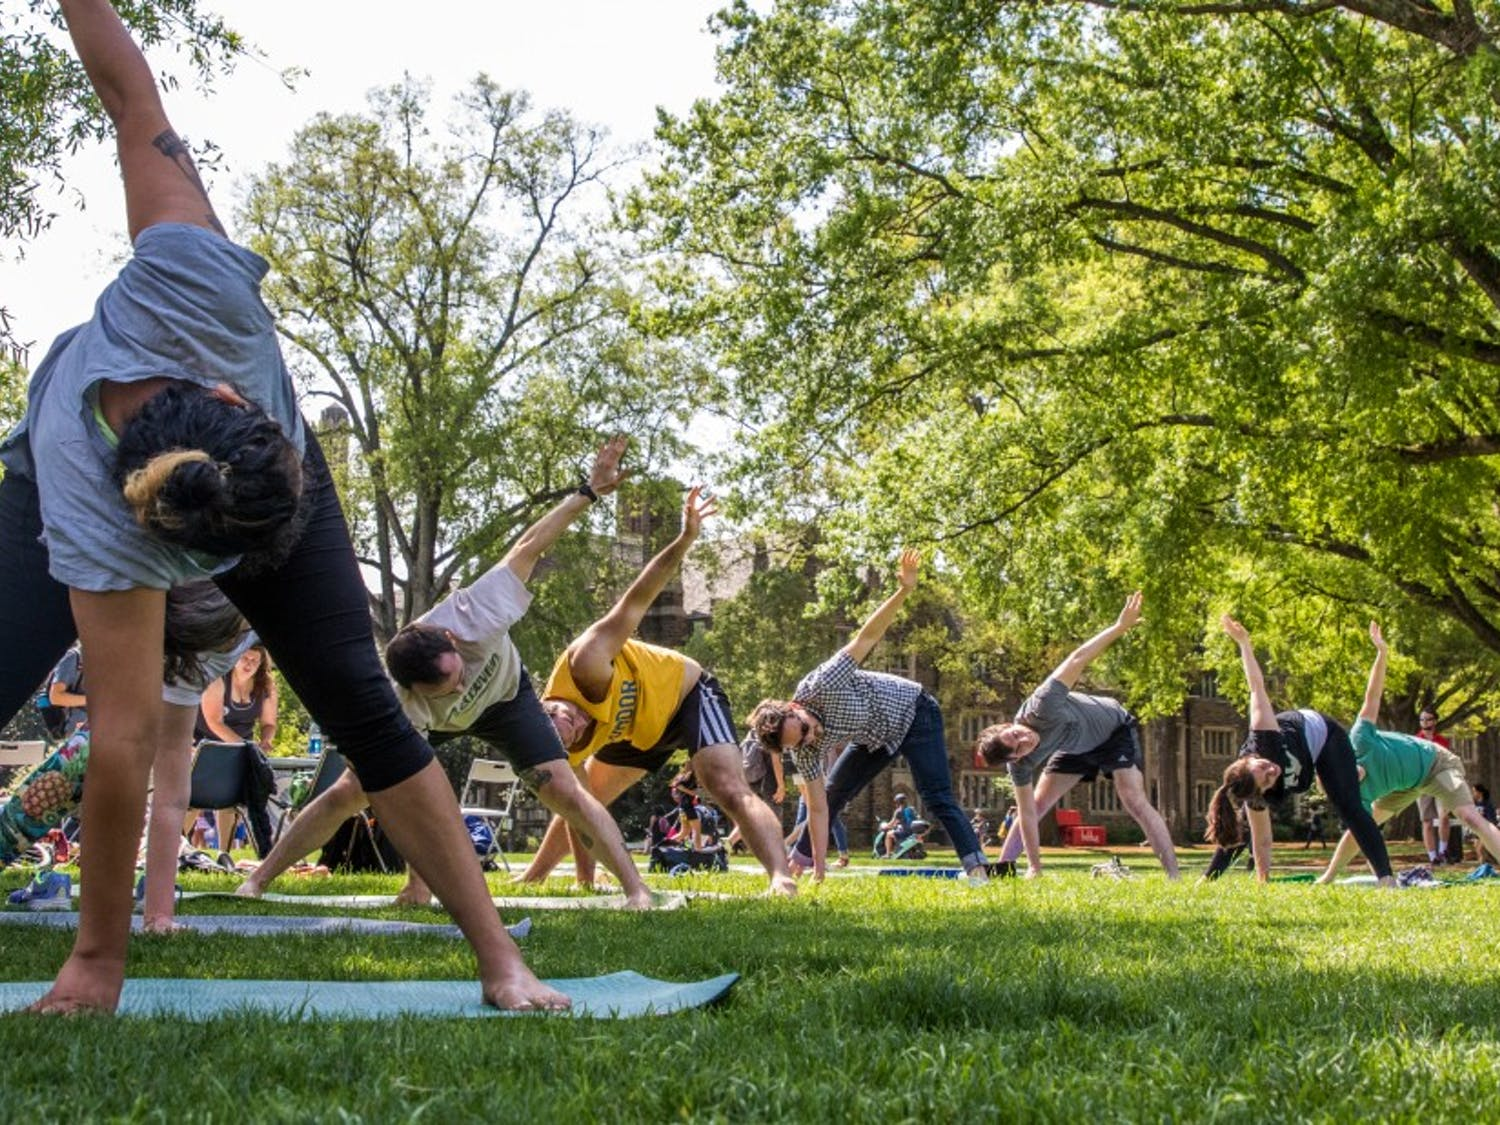 Graduate students held yoga classes Thursday and circulated a petition calling for Duke to cover their gym fees.